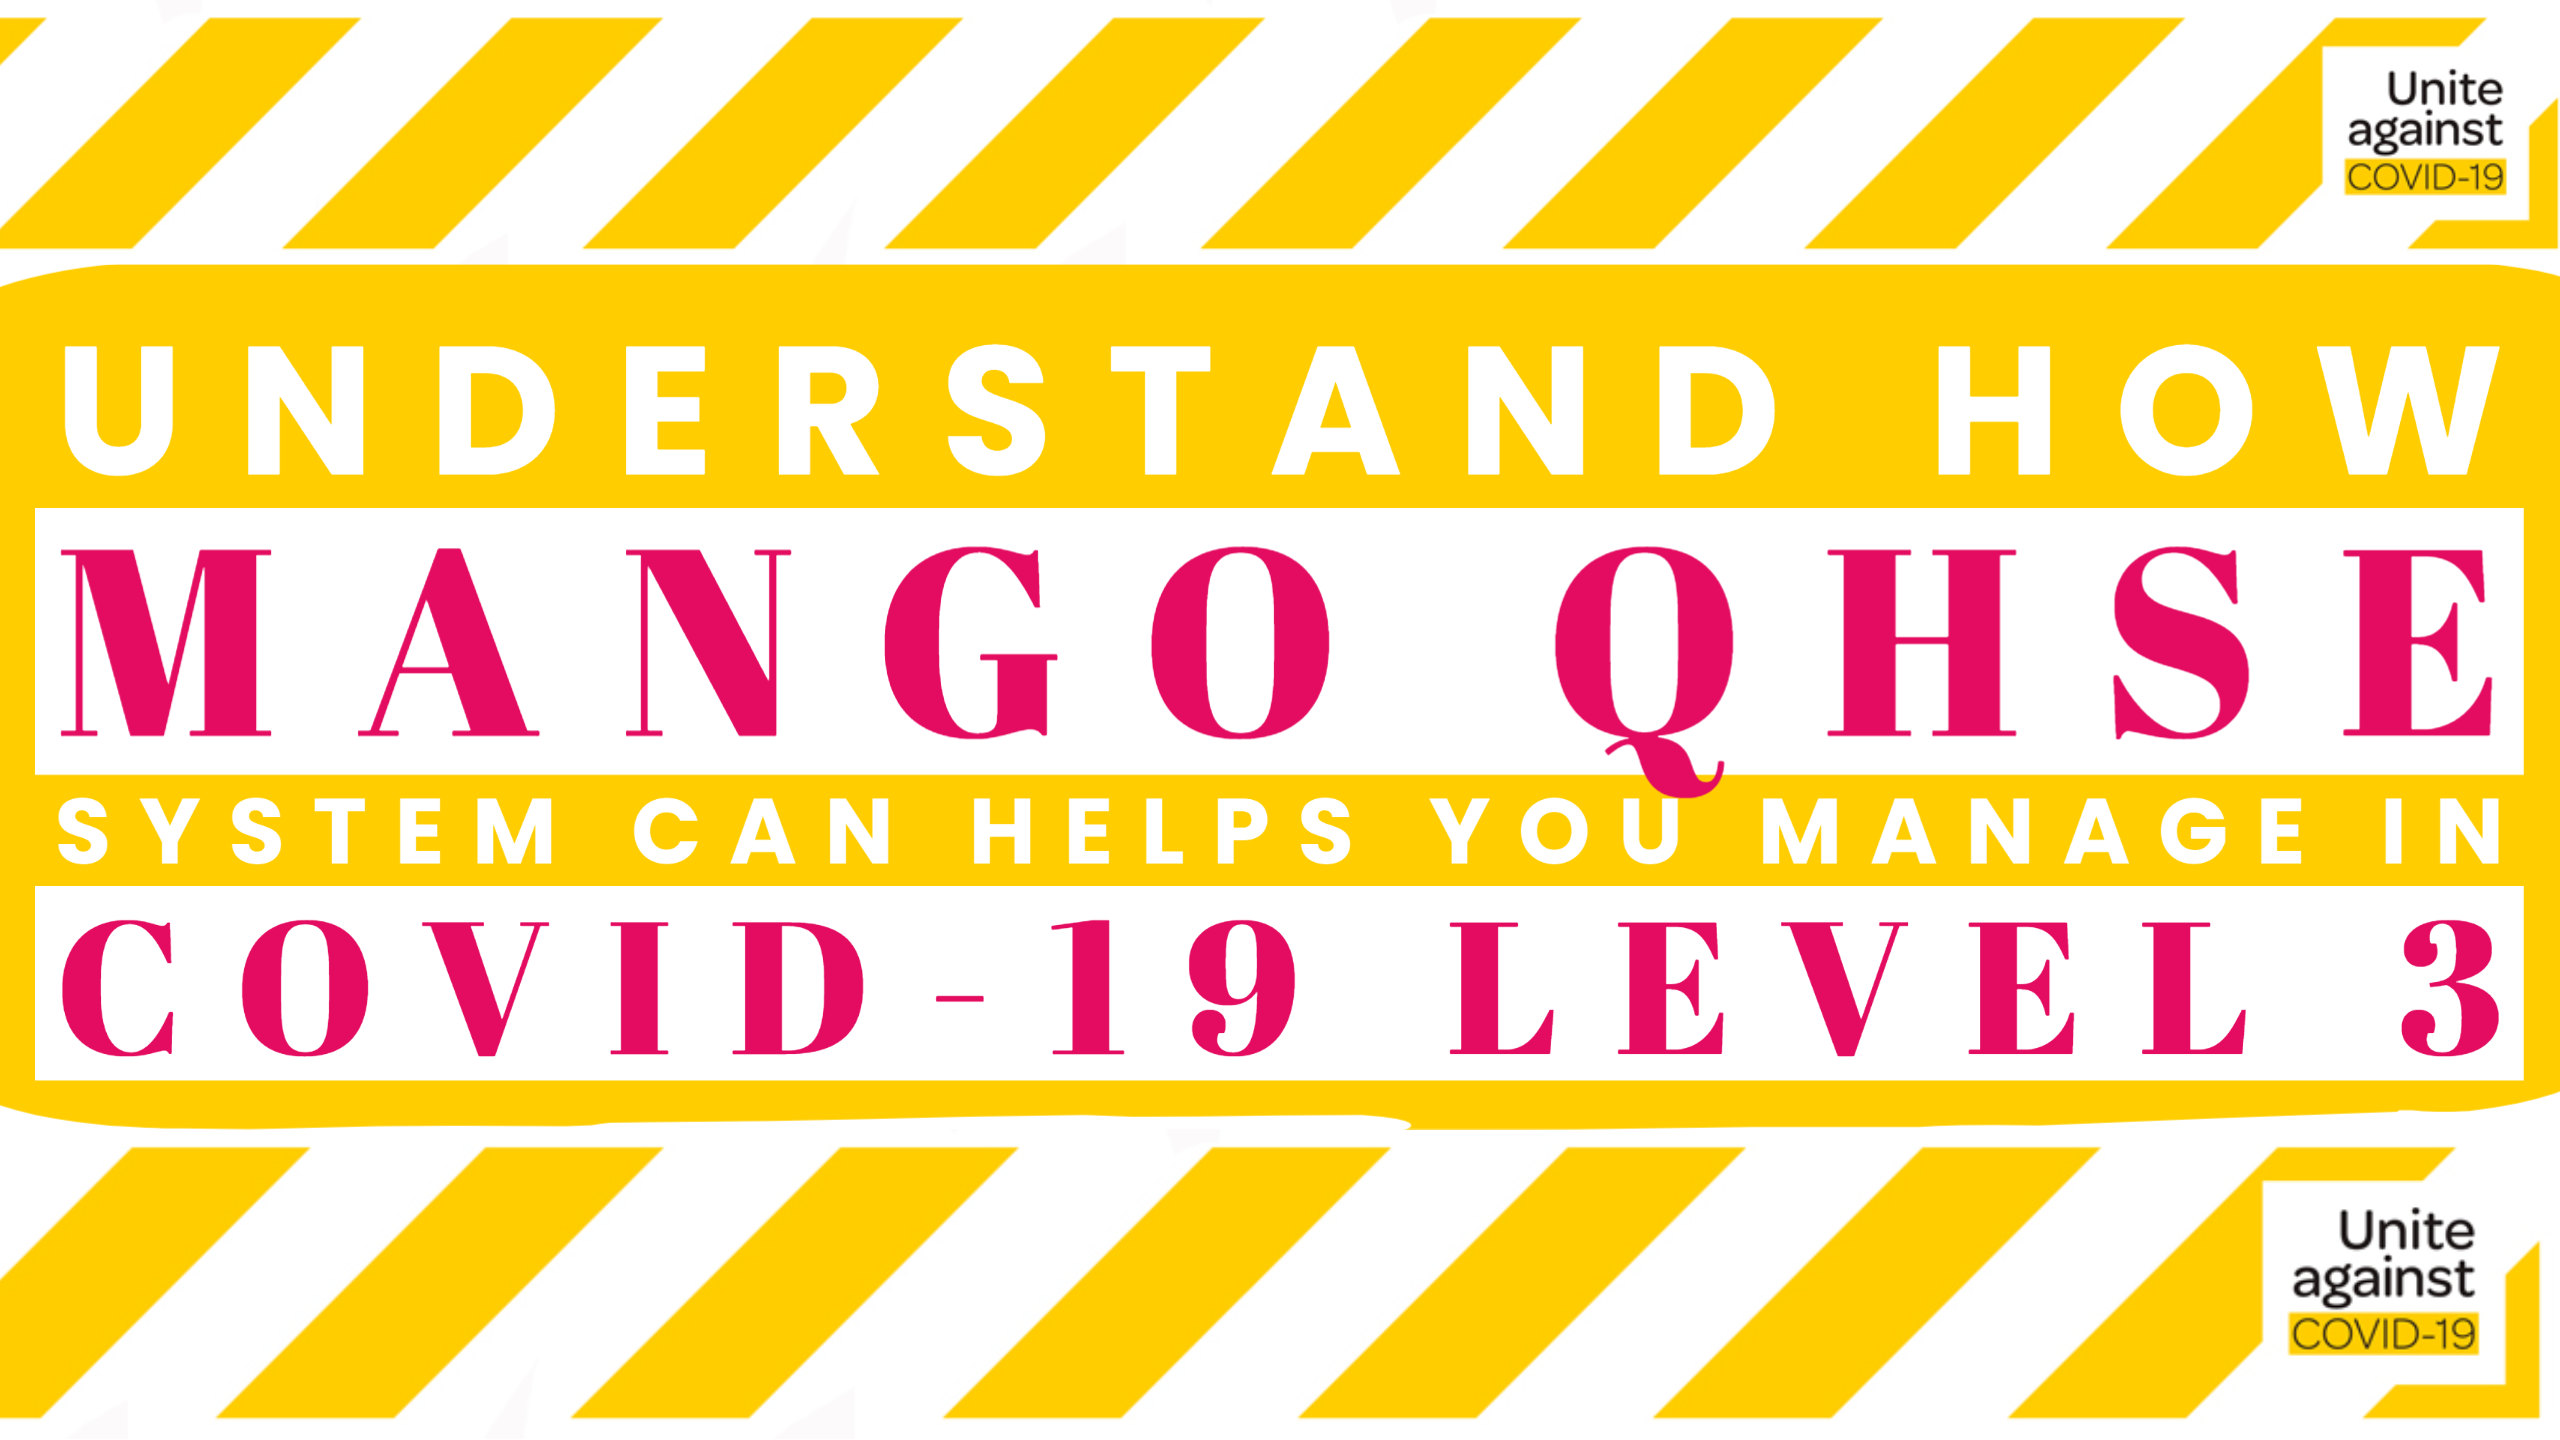 Managing Covid Level 3 with mango